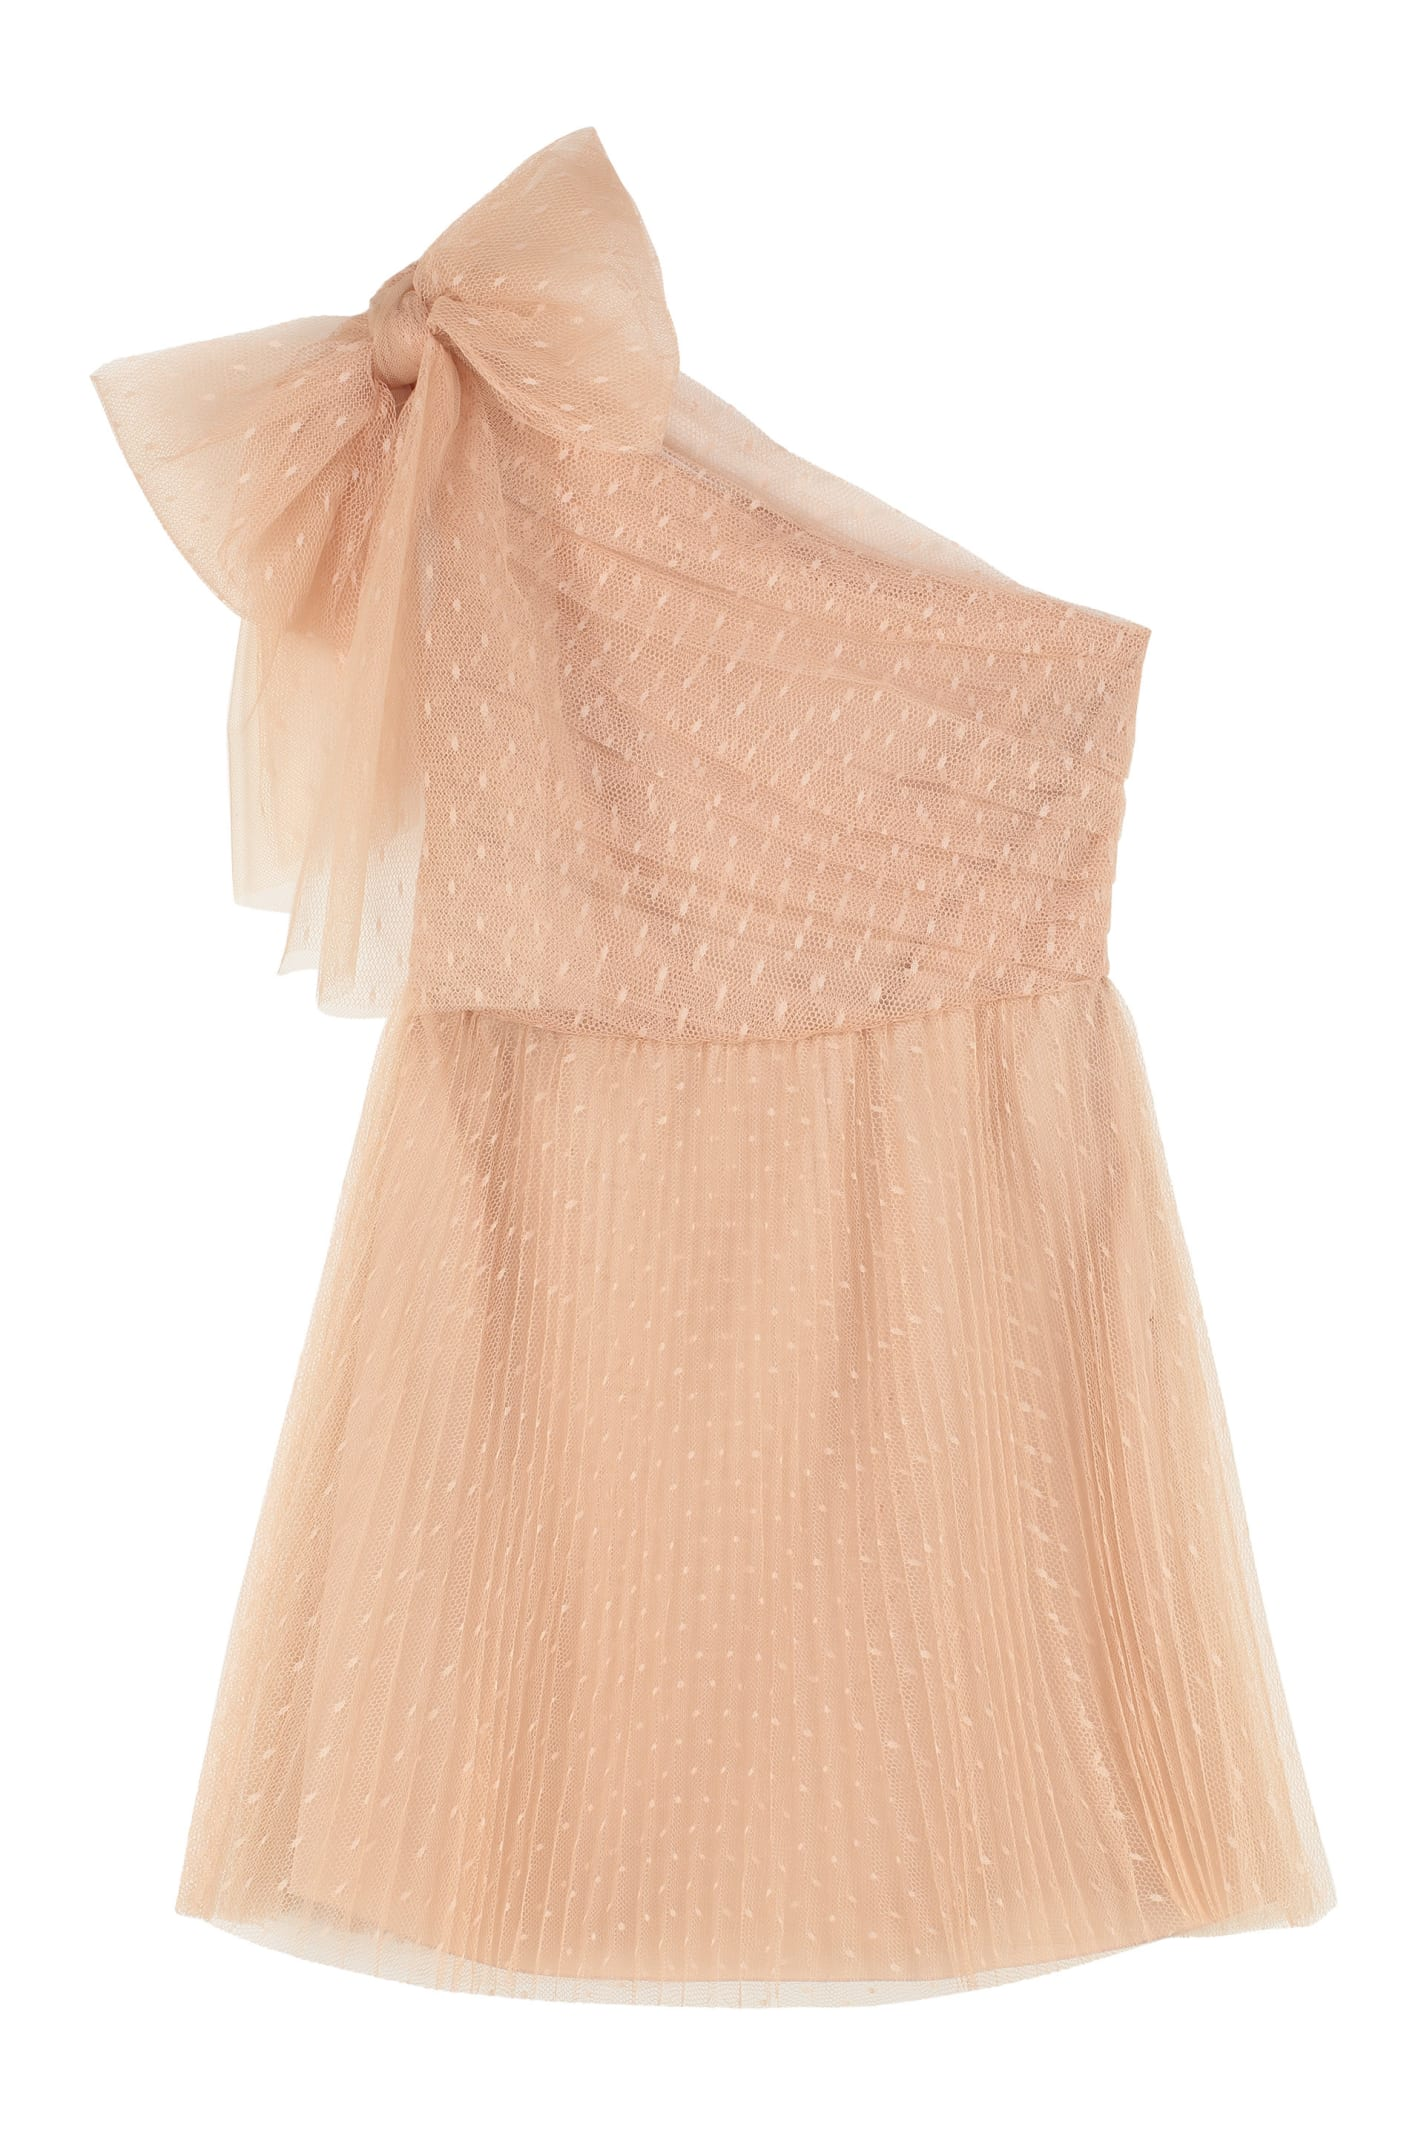 RED Valentino Draped Tulle One-shoulder Dress